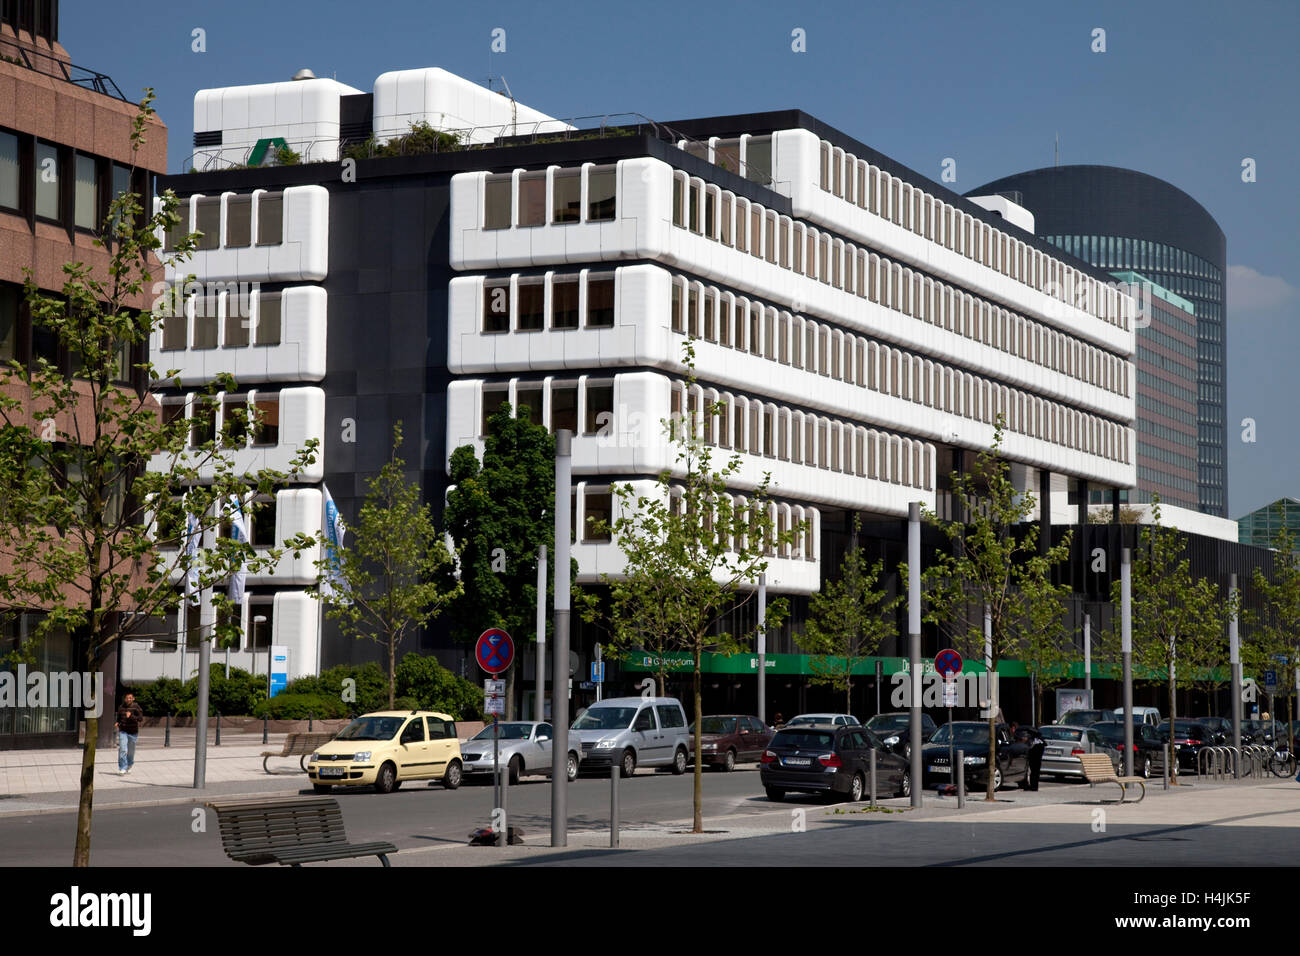 Dresdner Bank, Commerzbank, Dortmund, Ruhr area, North Rhine-Westphalia - Stock Image